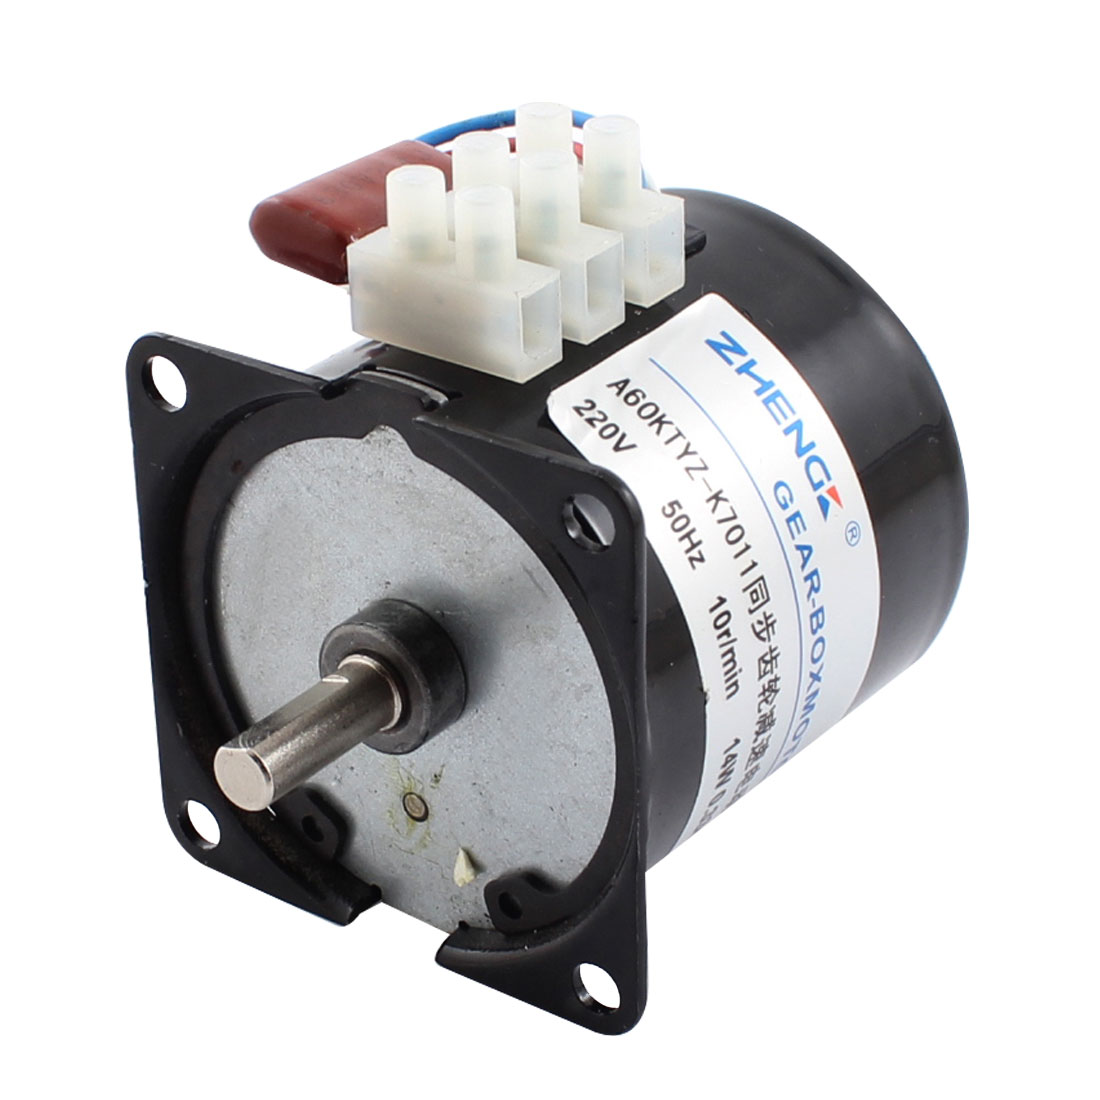 AC 220V 14W 10 R/MIN Rotary Speed Output 3 Position Terminal Block Connector Electrical Synchronous Reducer Geared Motor Replacement